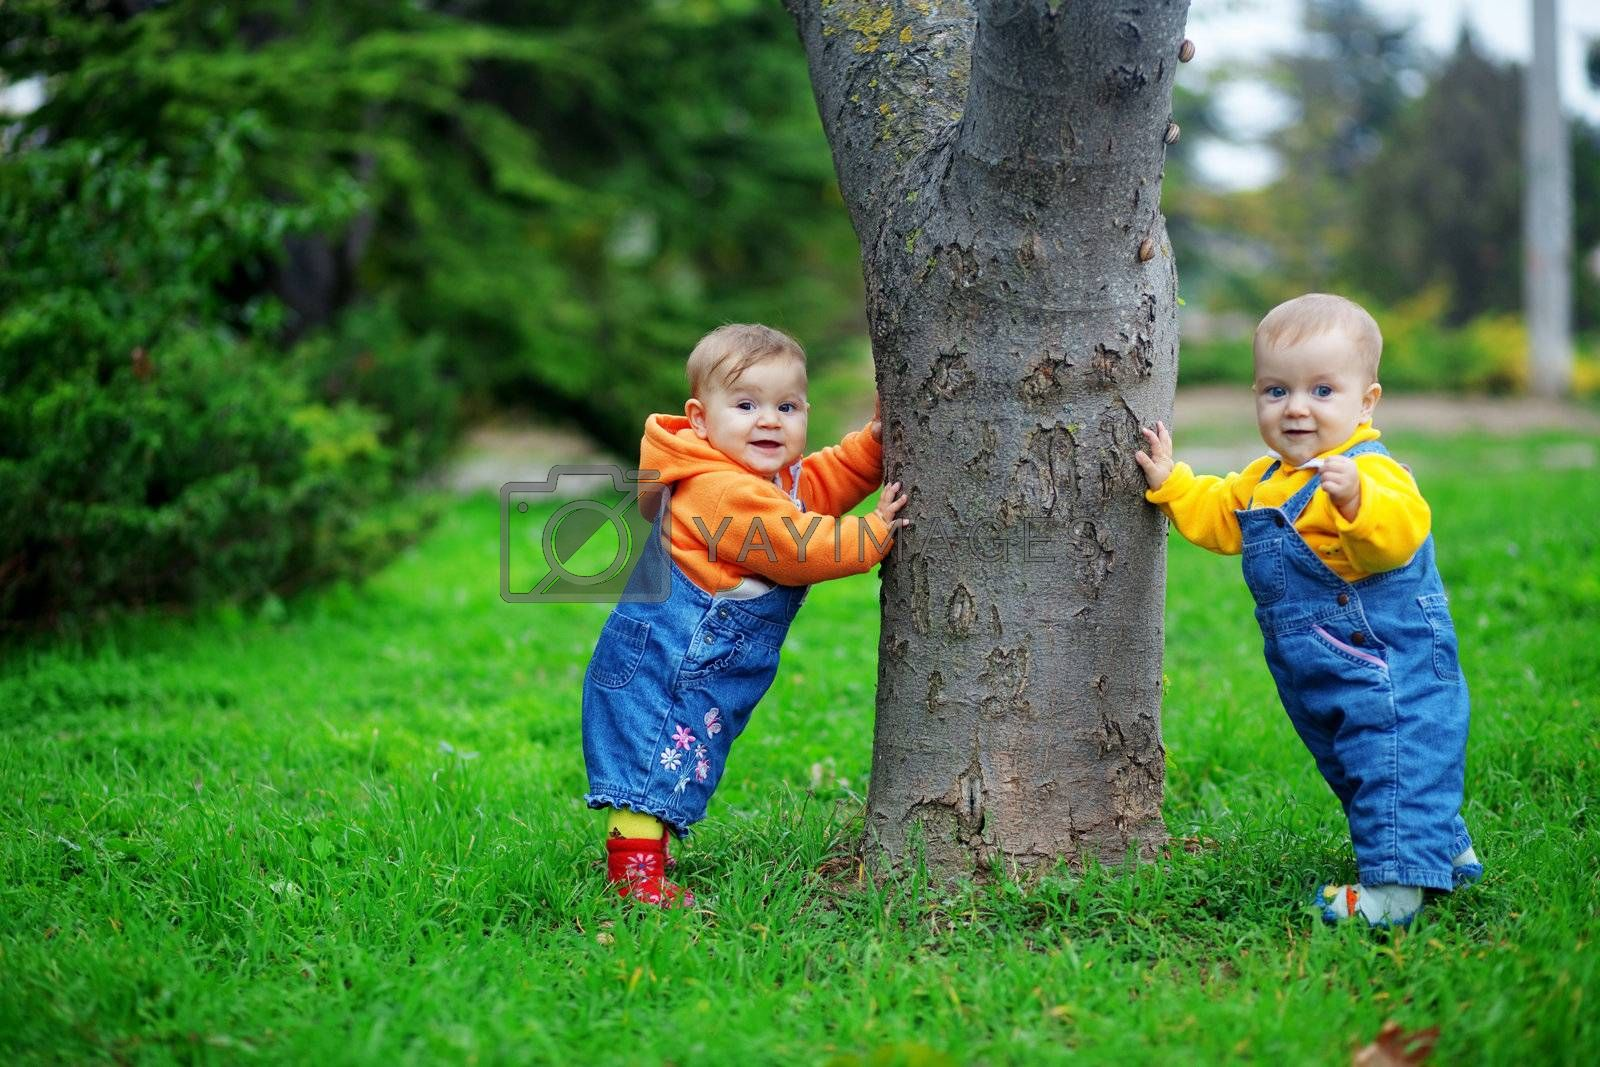 Cute twins babies standing on fresh green grass in park near tree